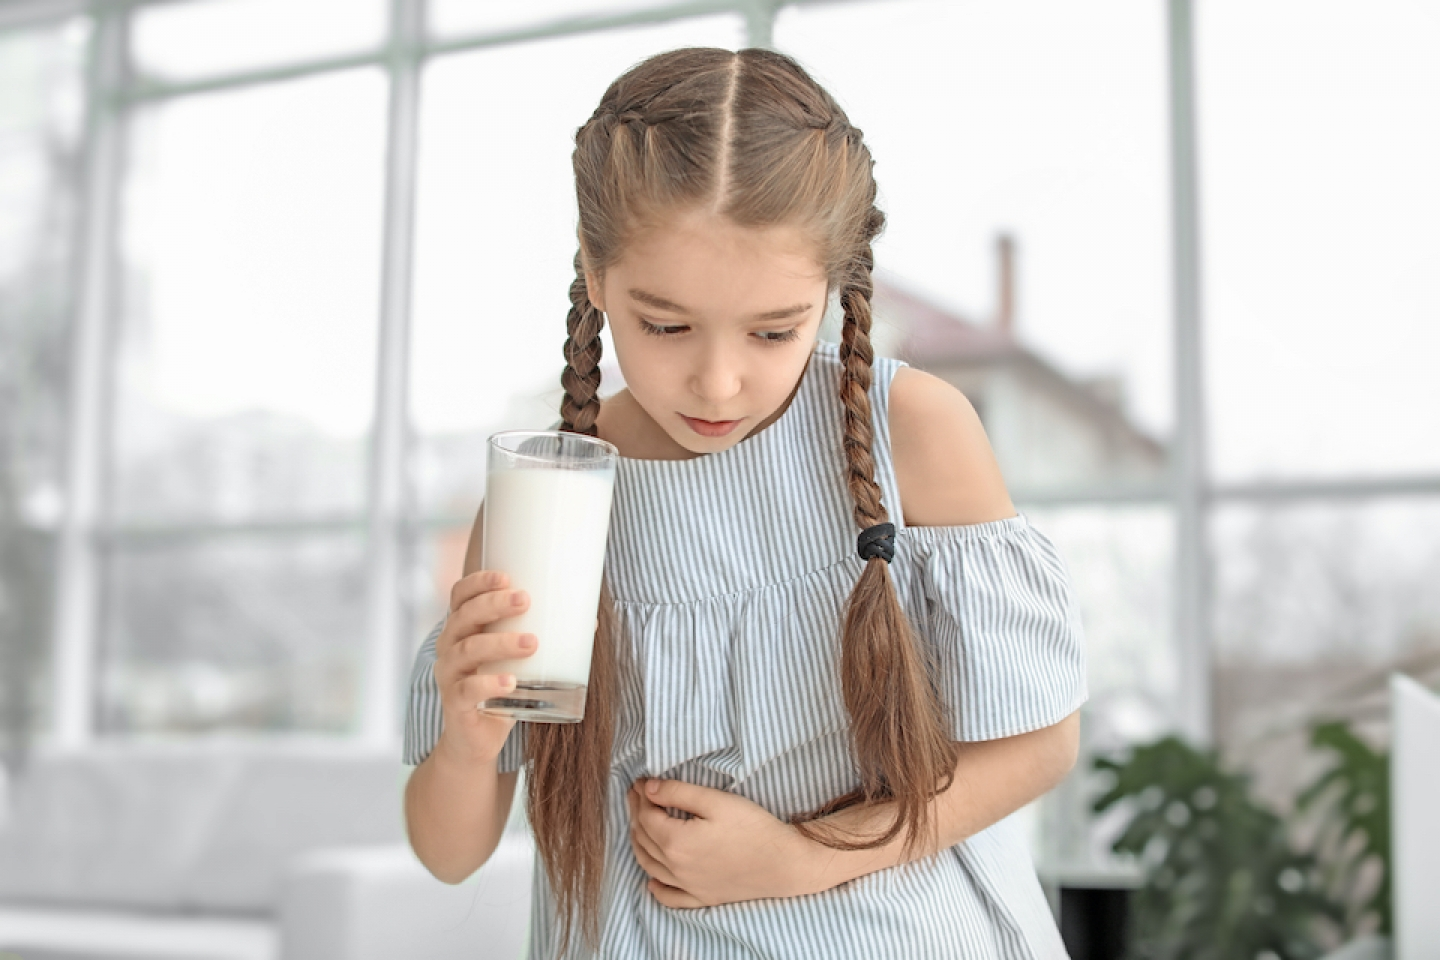 child with milk in her hand